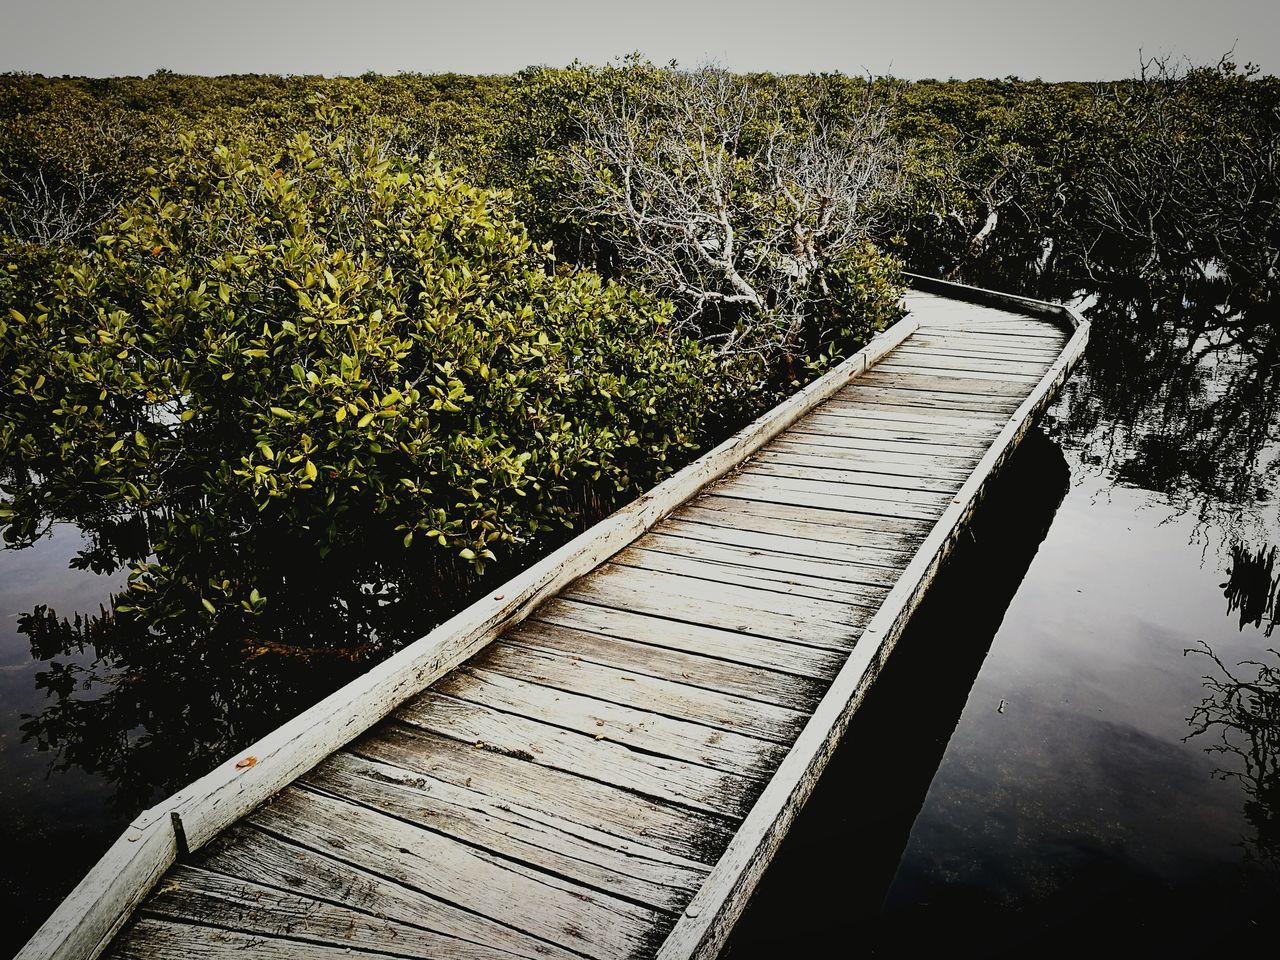 Mangrove trail in St. kilda Water Day No People Outdoors Nature Sky Close-up Mangroves